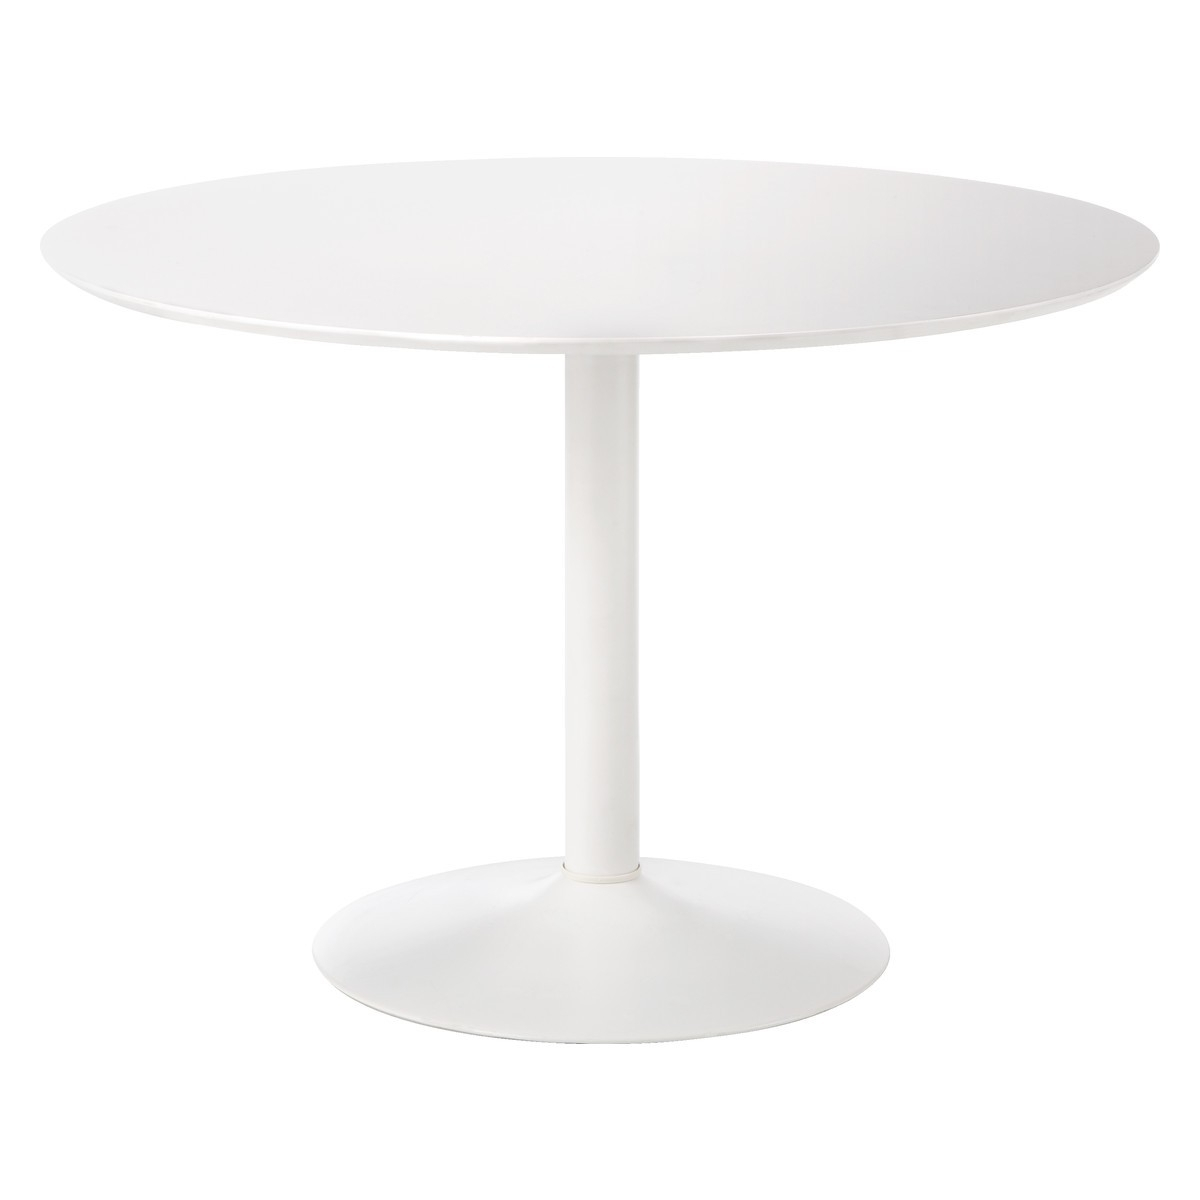 Buy Now At Habitat Uk Intended For Round White Dining Tables (Gallery 2 of 25)